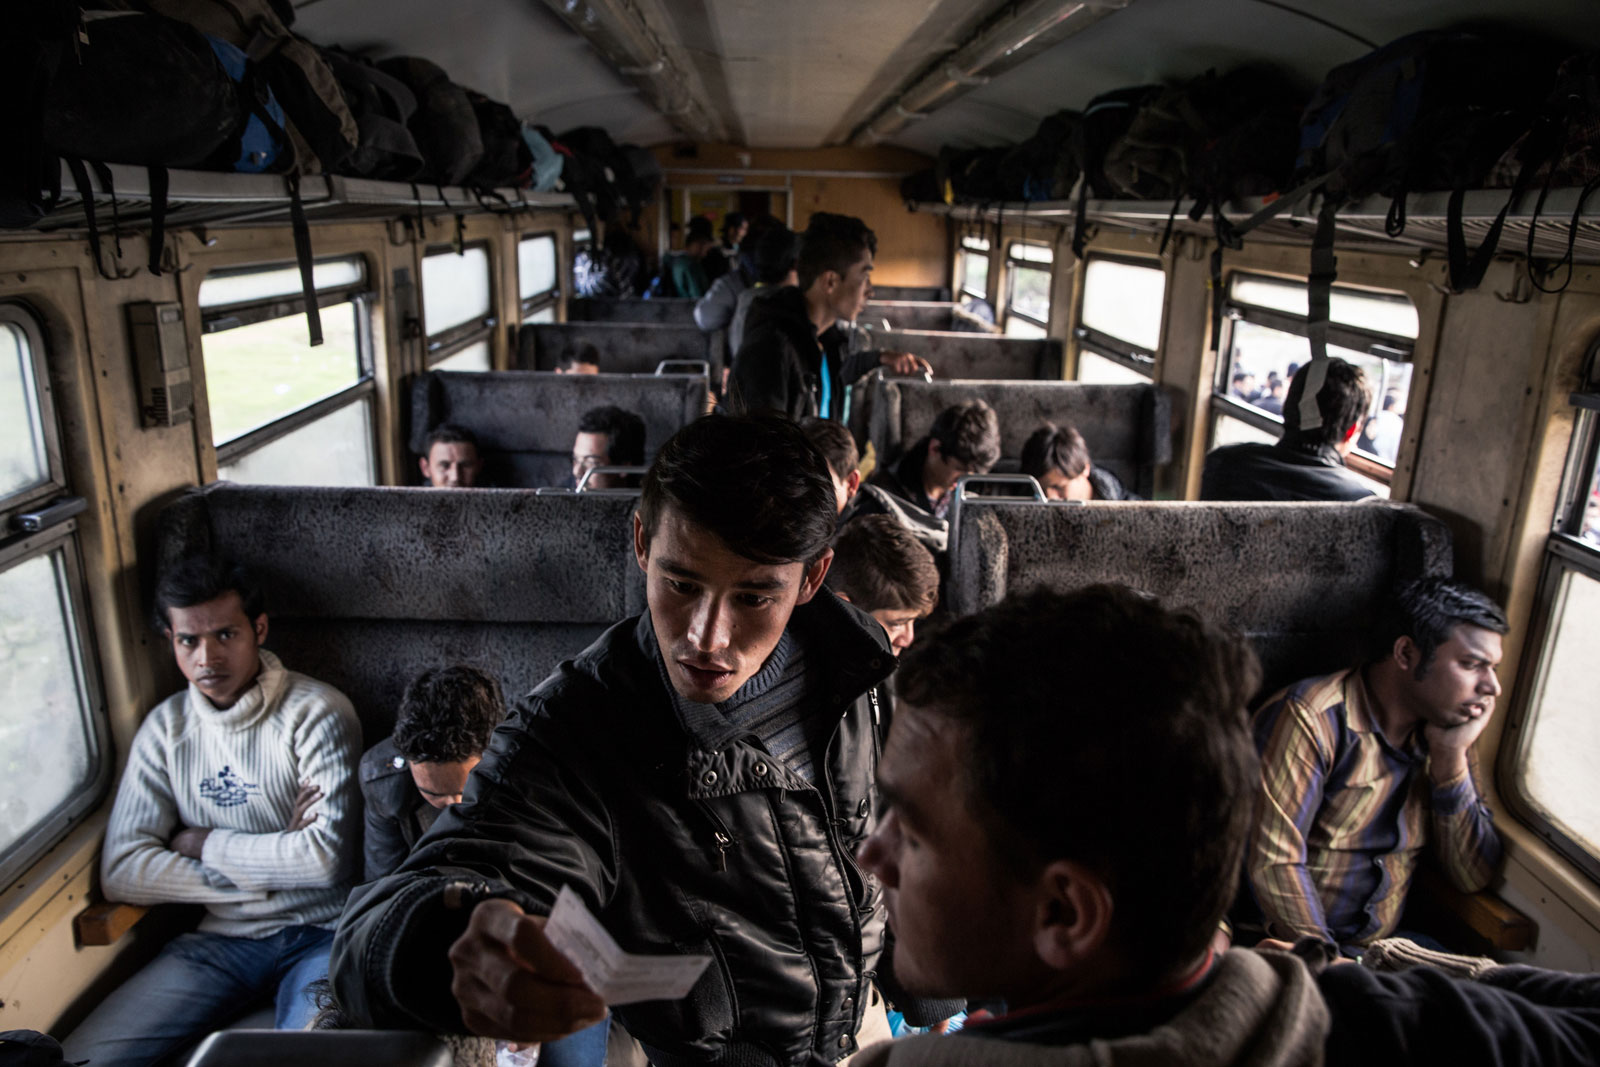 Refugees board trains from the transit camp in Gevgelija, Macedonia. Six or seven trains a day take refugees to the border with Serbia. [Ioana Moldovan/Al Jazeera]